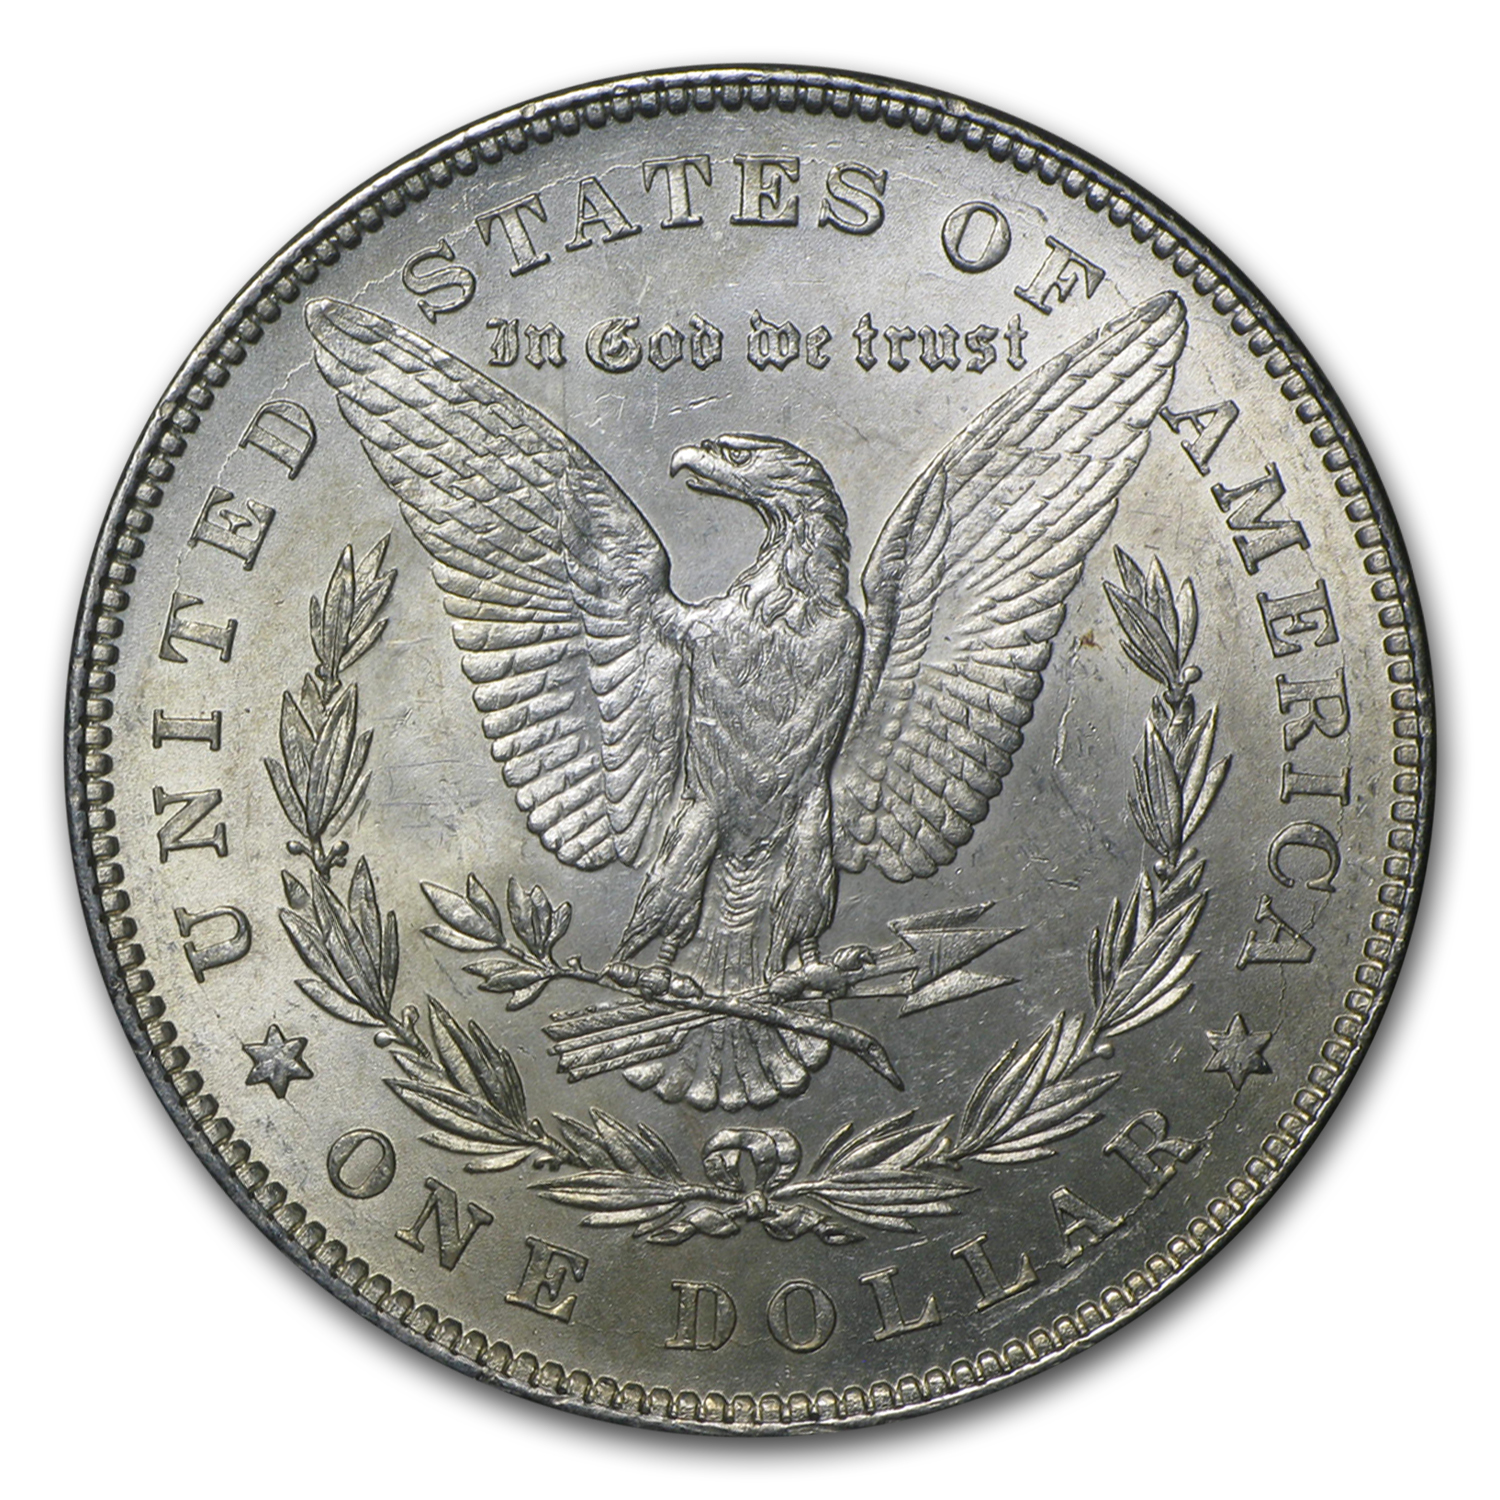 1878 Morgan Dollar 7 Tailfeathers Rev of 78 BU